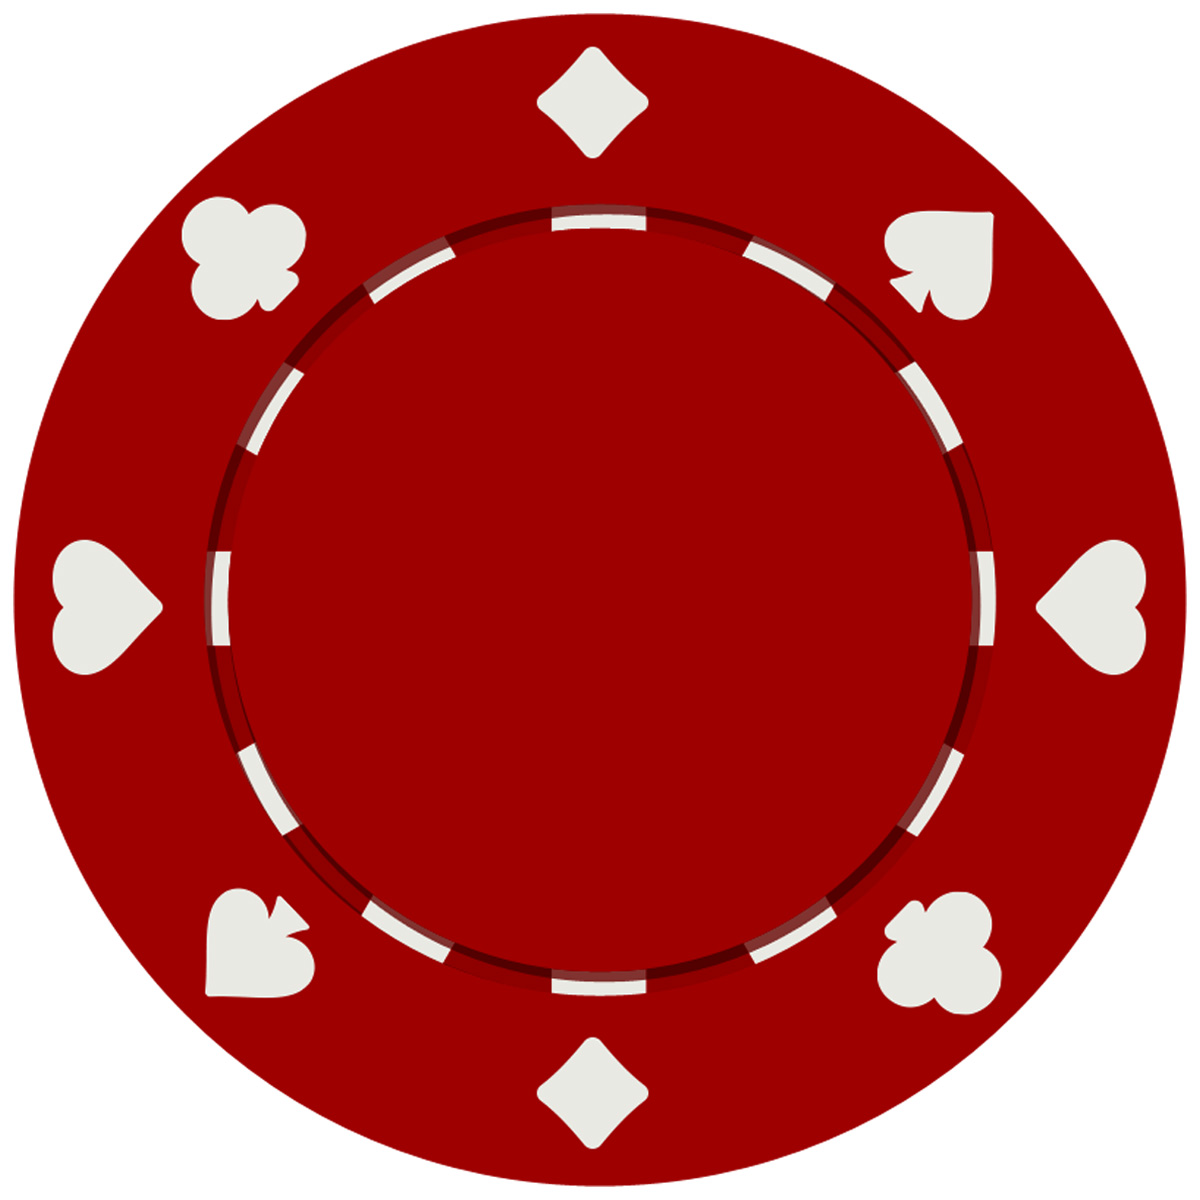 Poker Chip Gratis